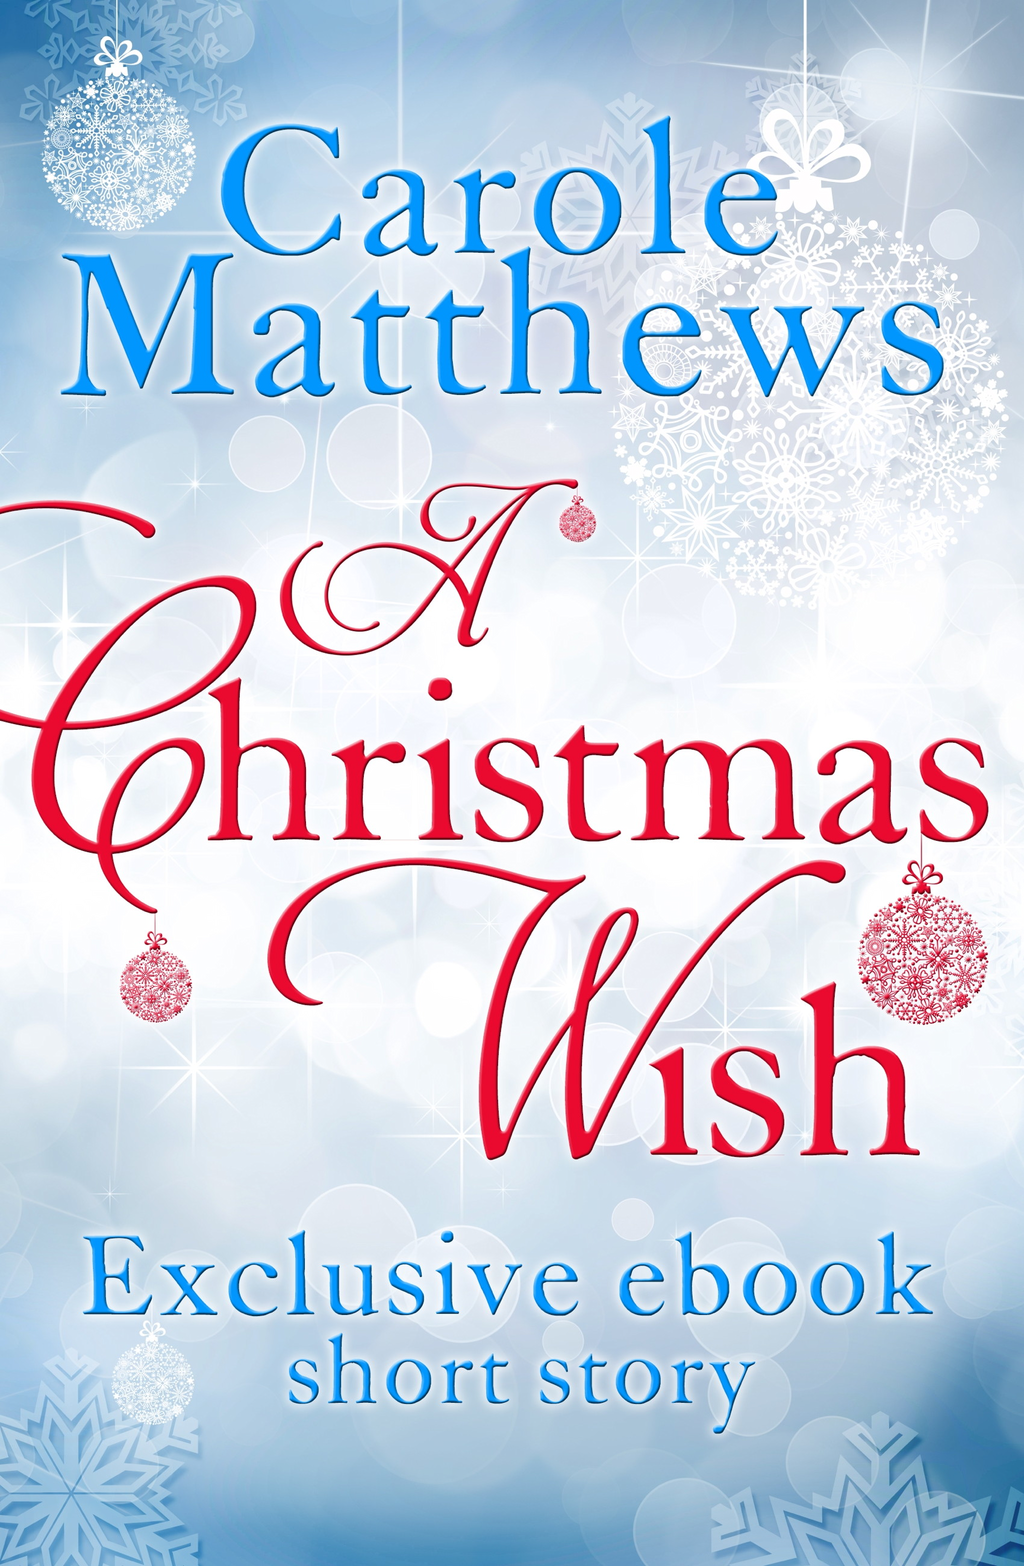 A Christmas Wish A twenty-minute festive read from Carole Matthews